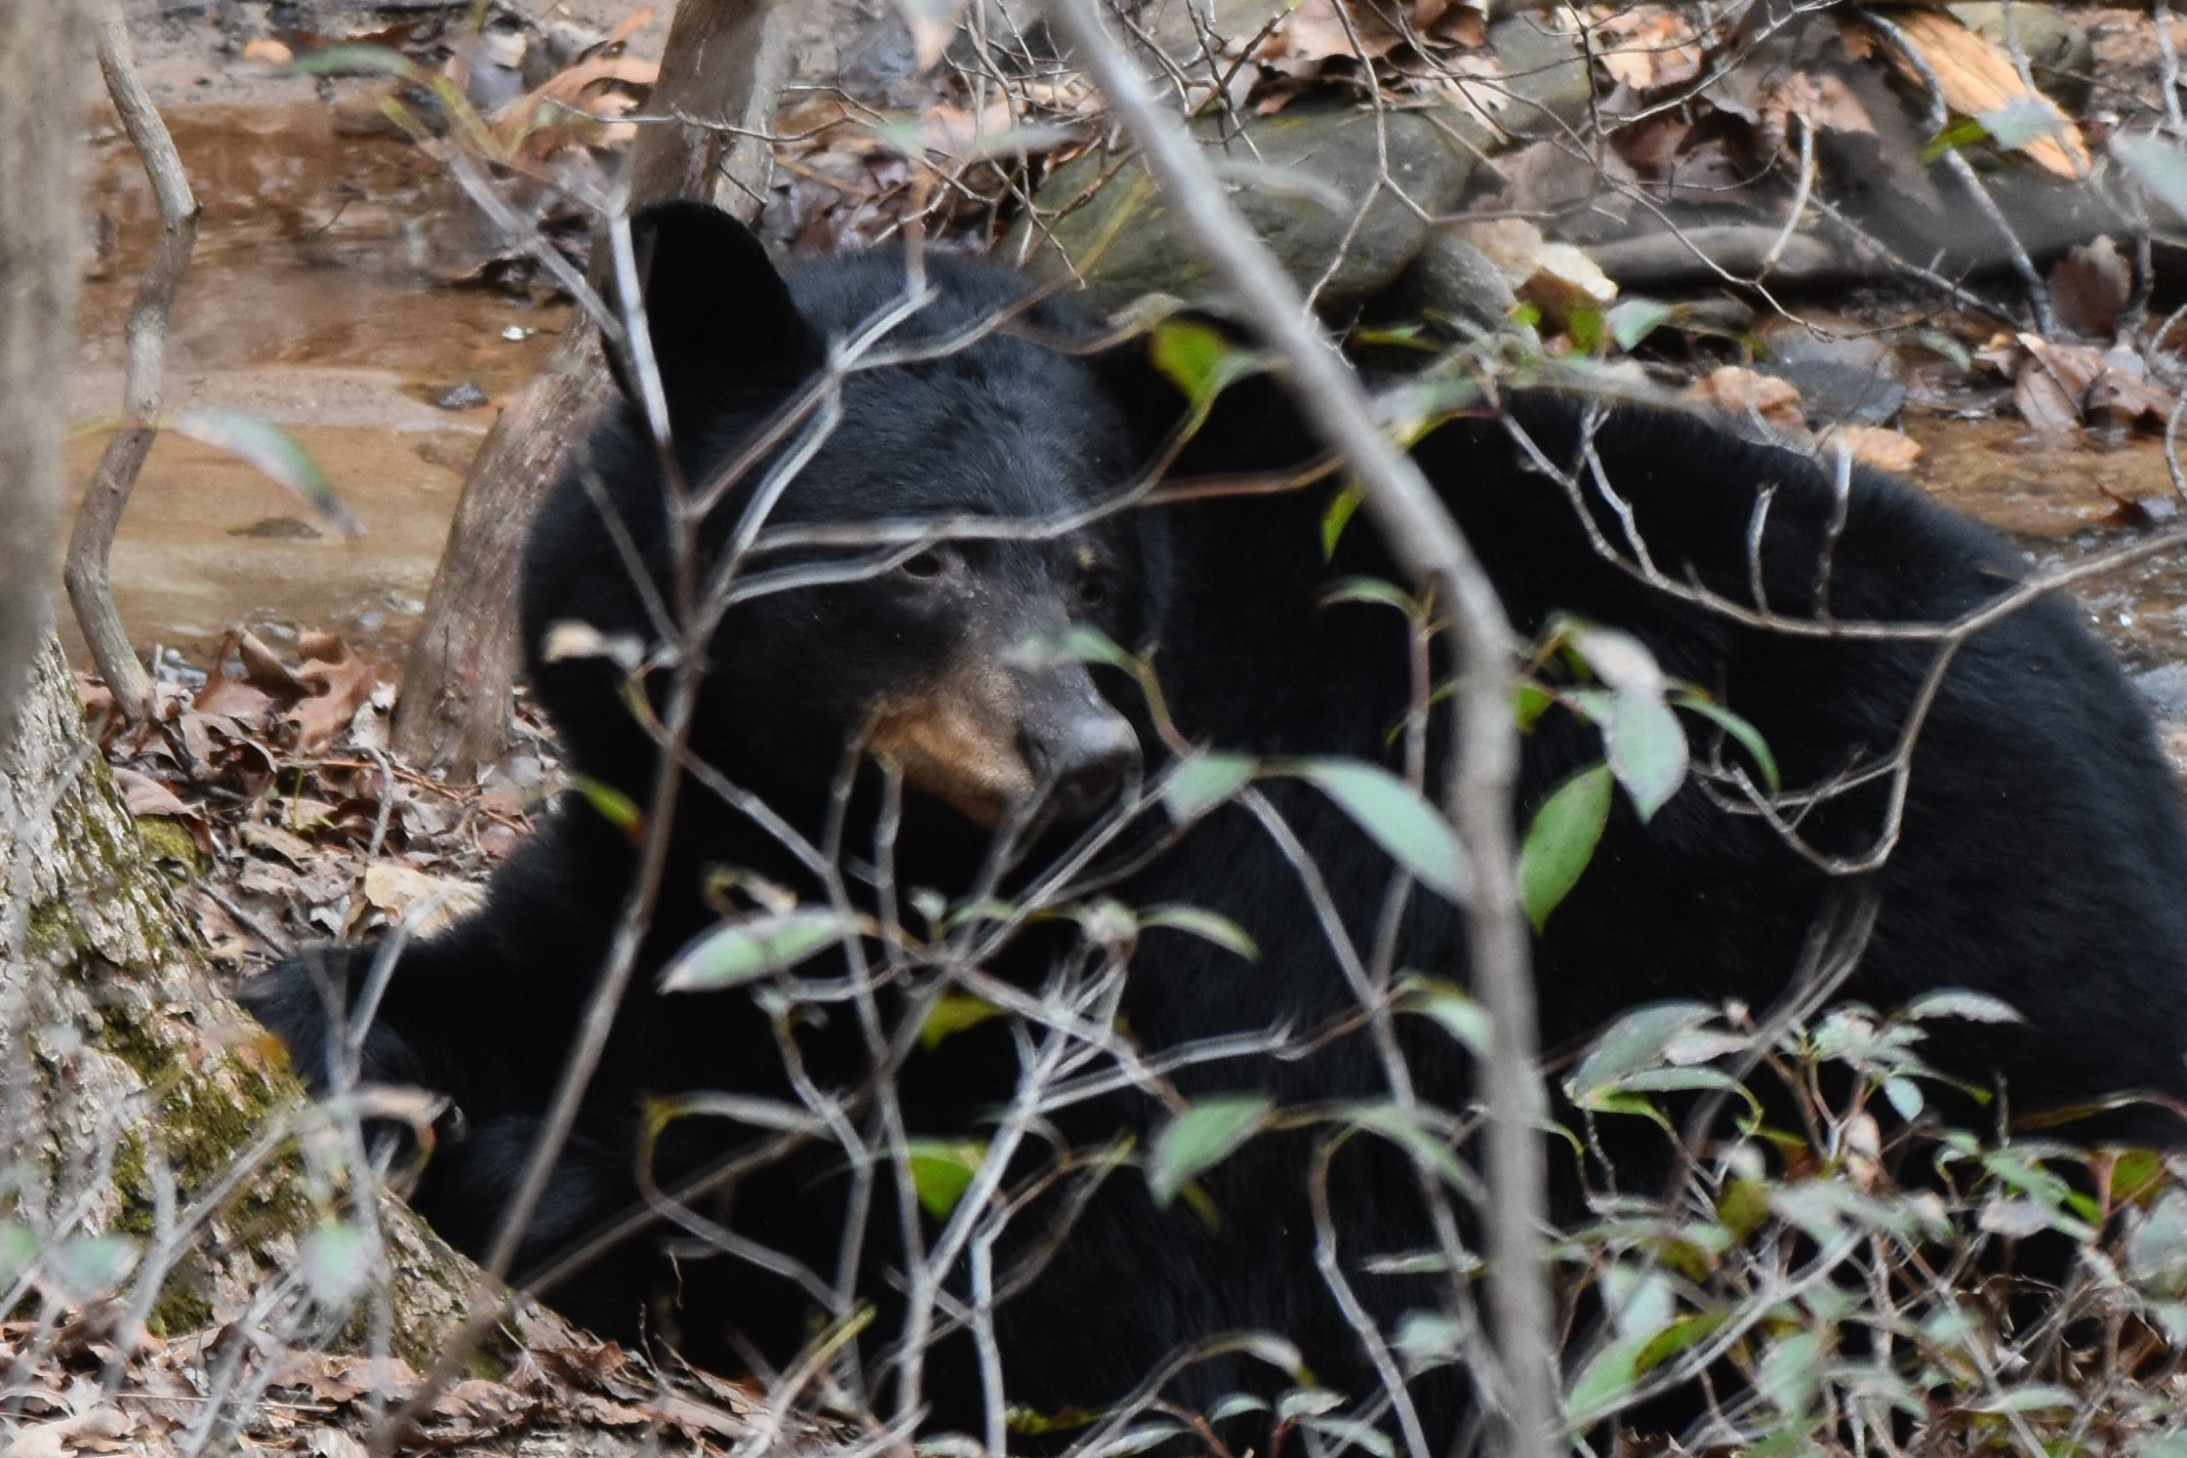 February 2018 - Black Bear in Bent Tree